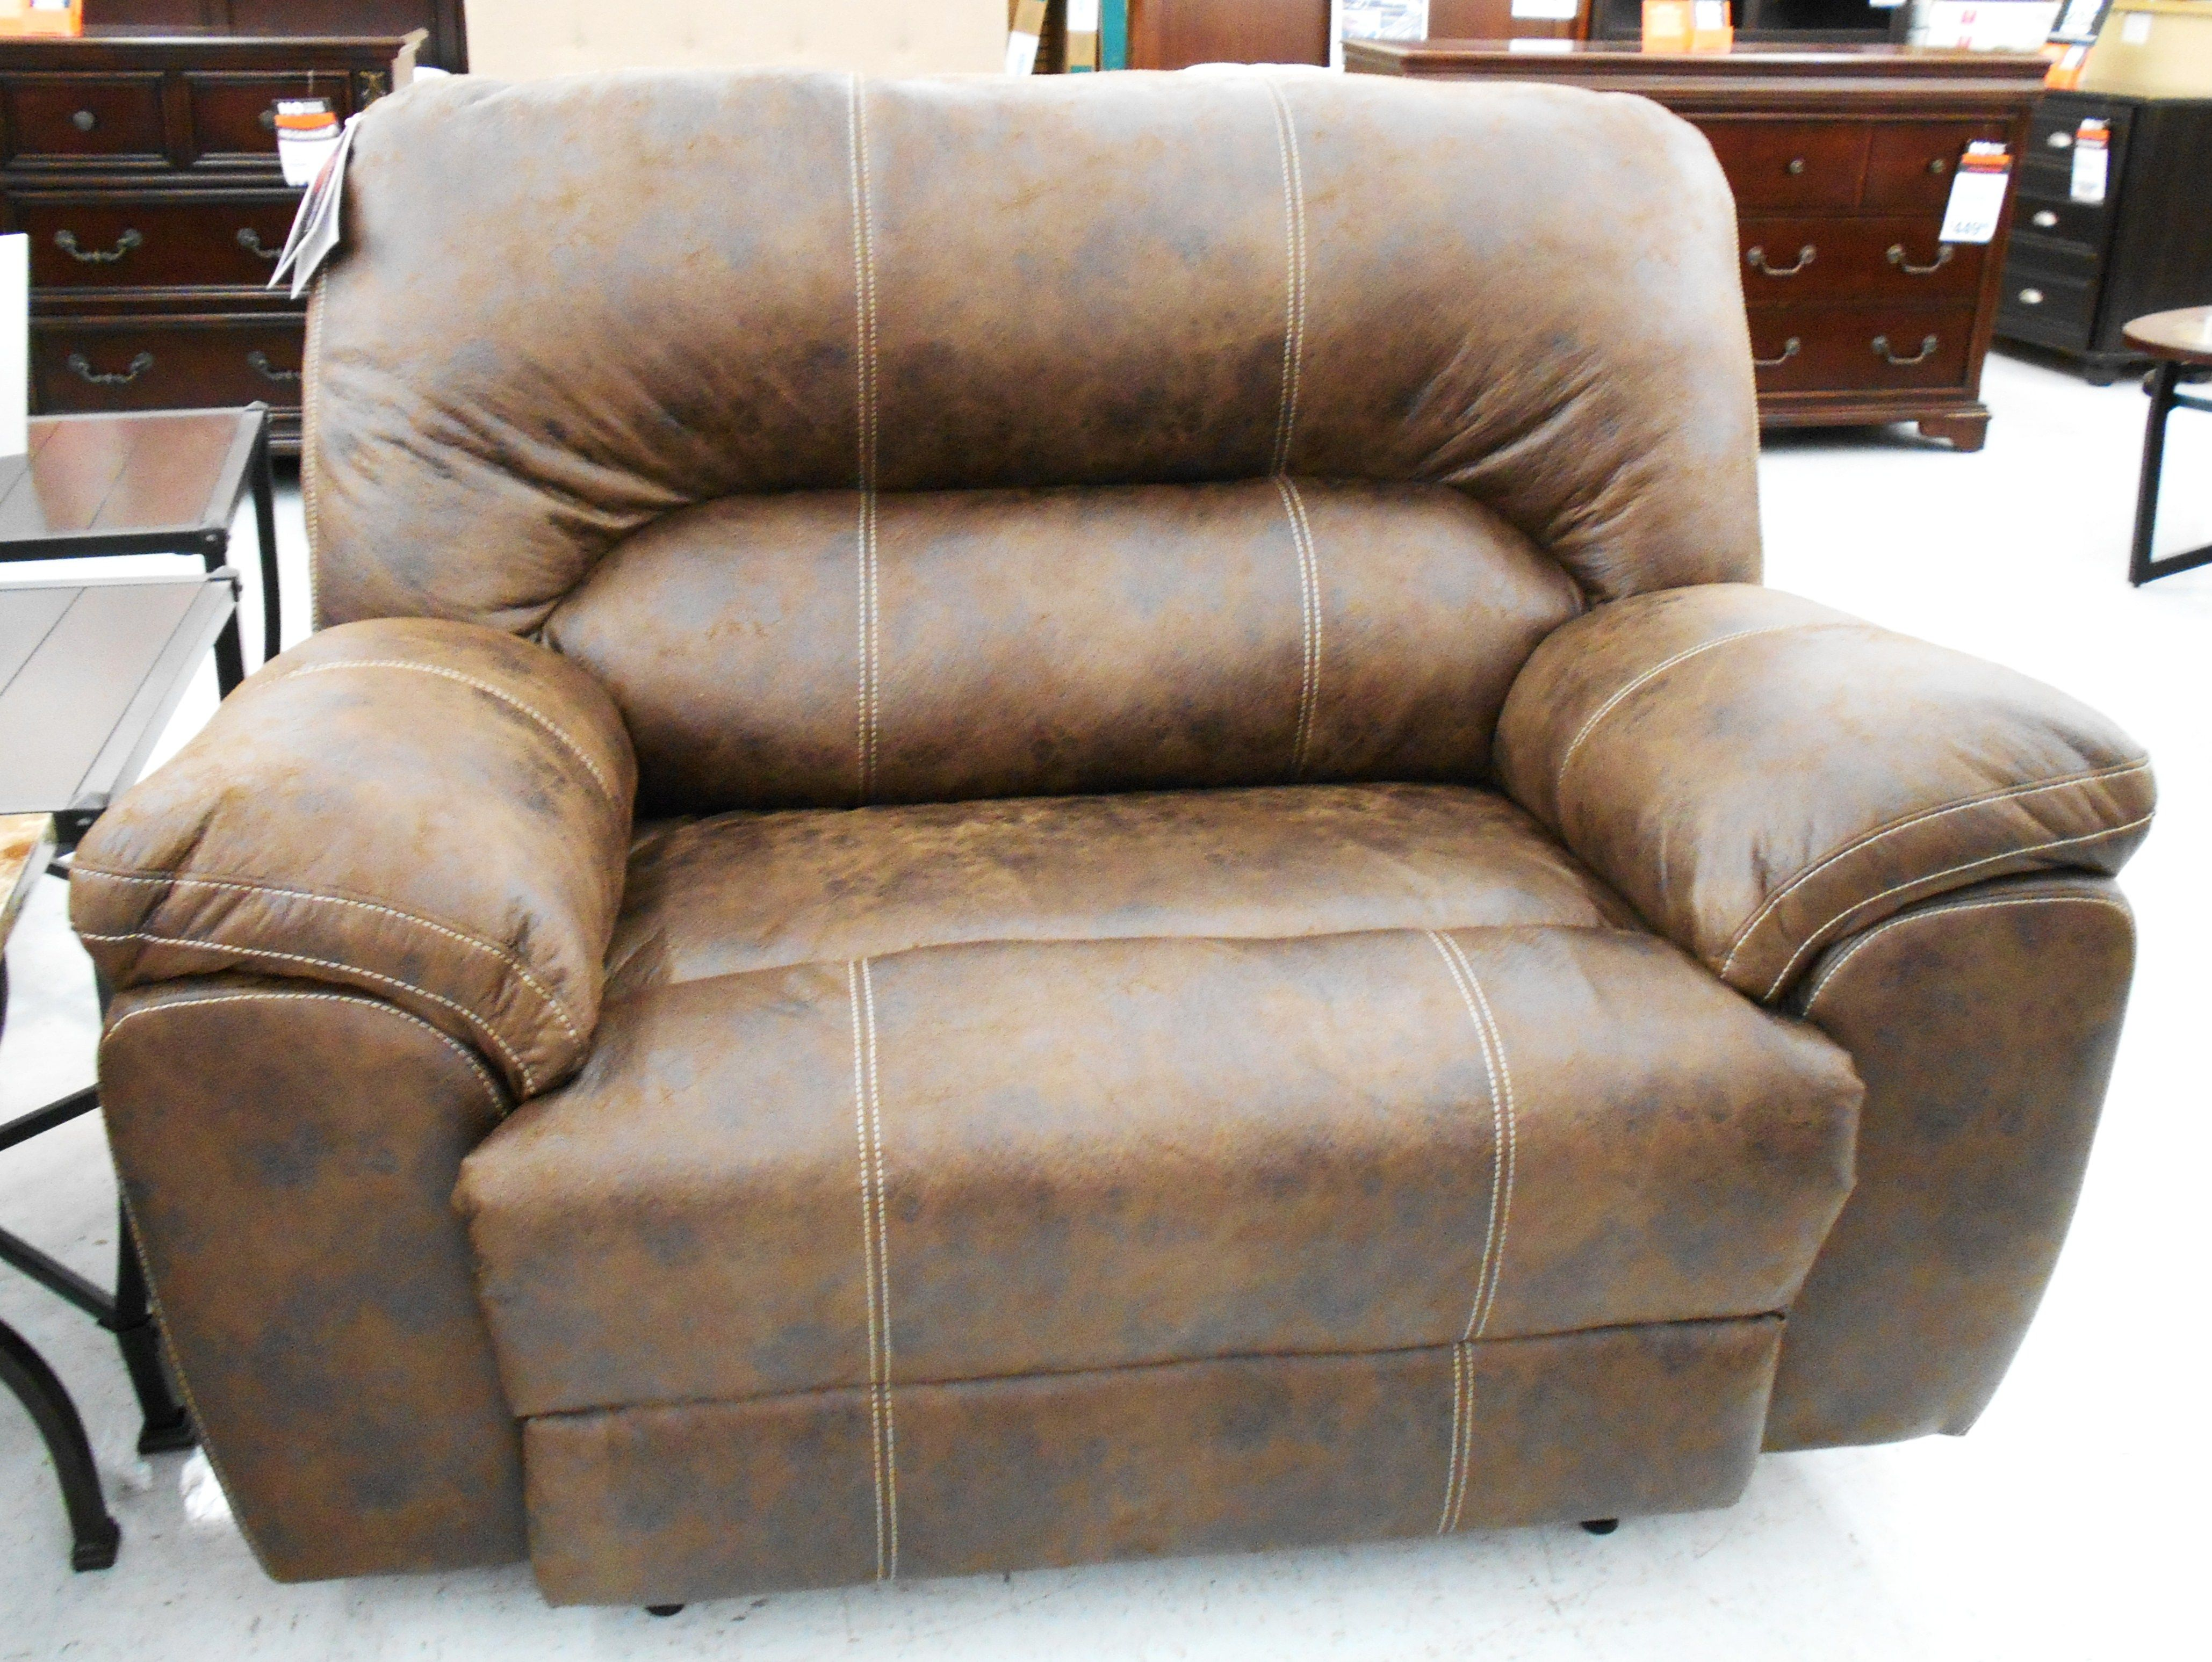 Stratolounger Stallion Snuggle Up Recliner 399 99 From Big Lots